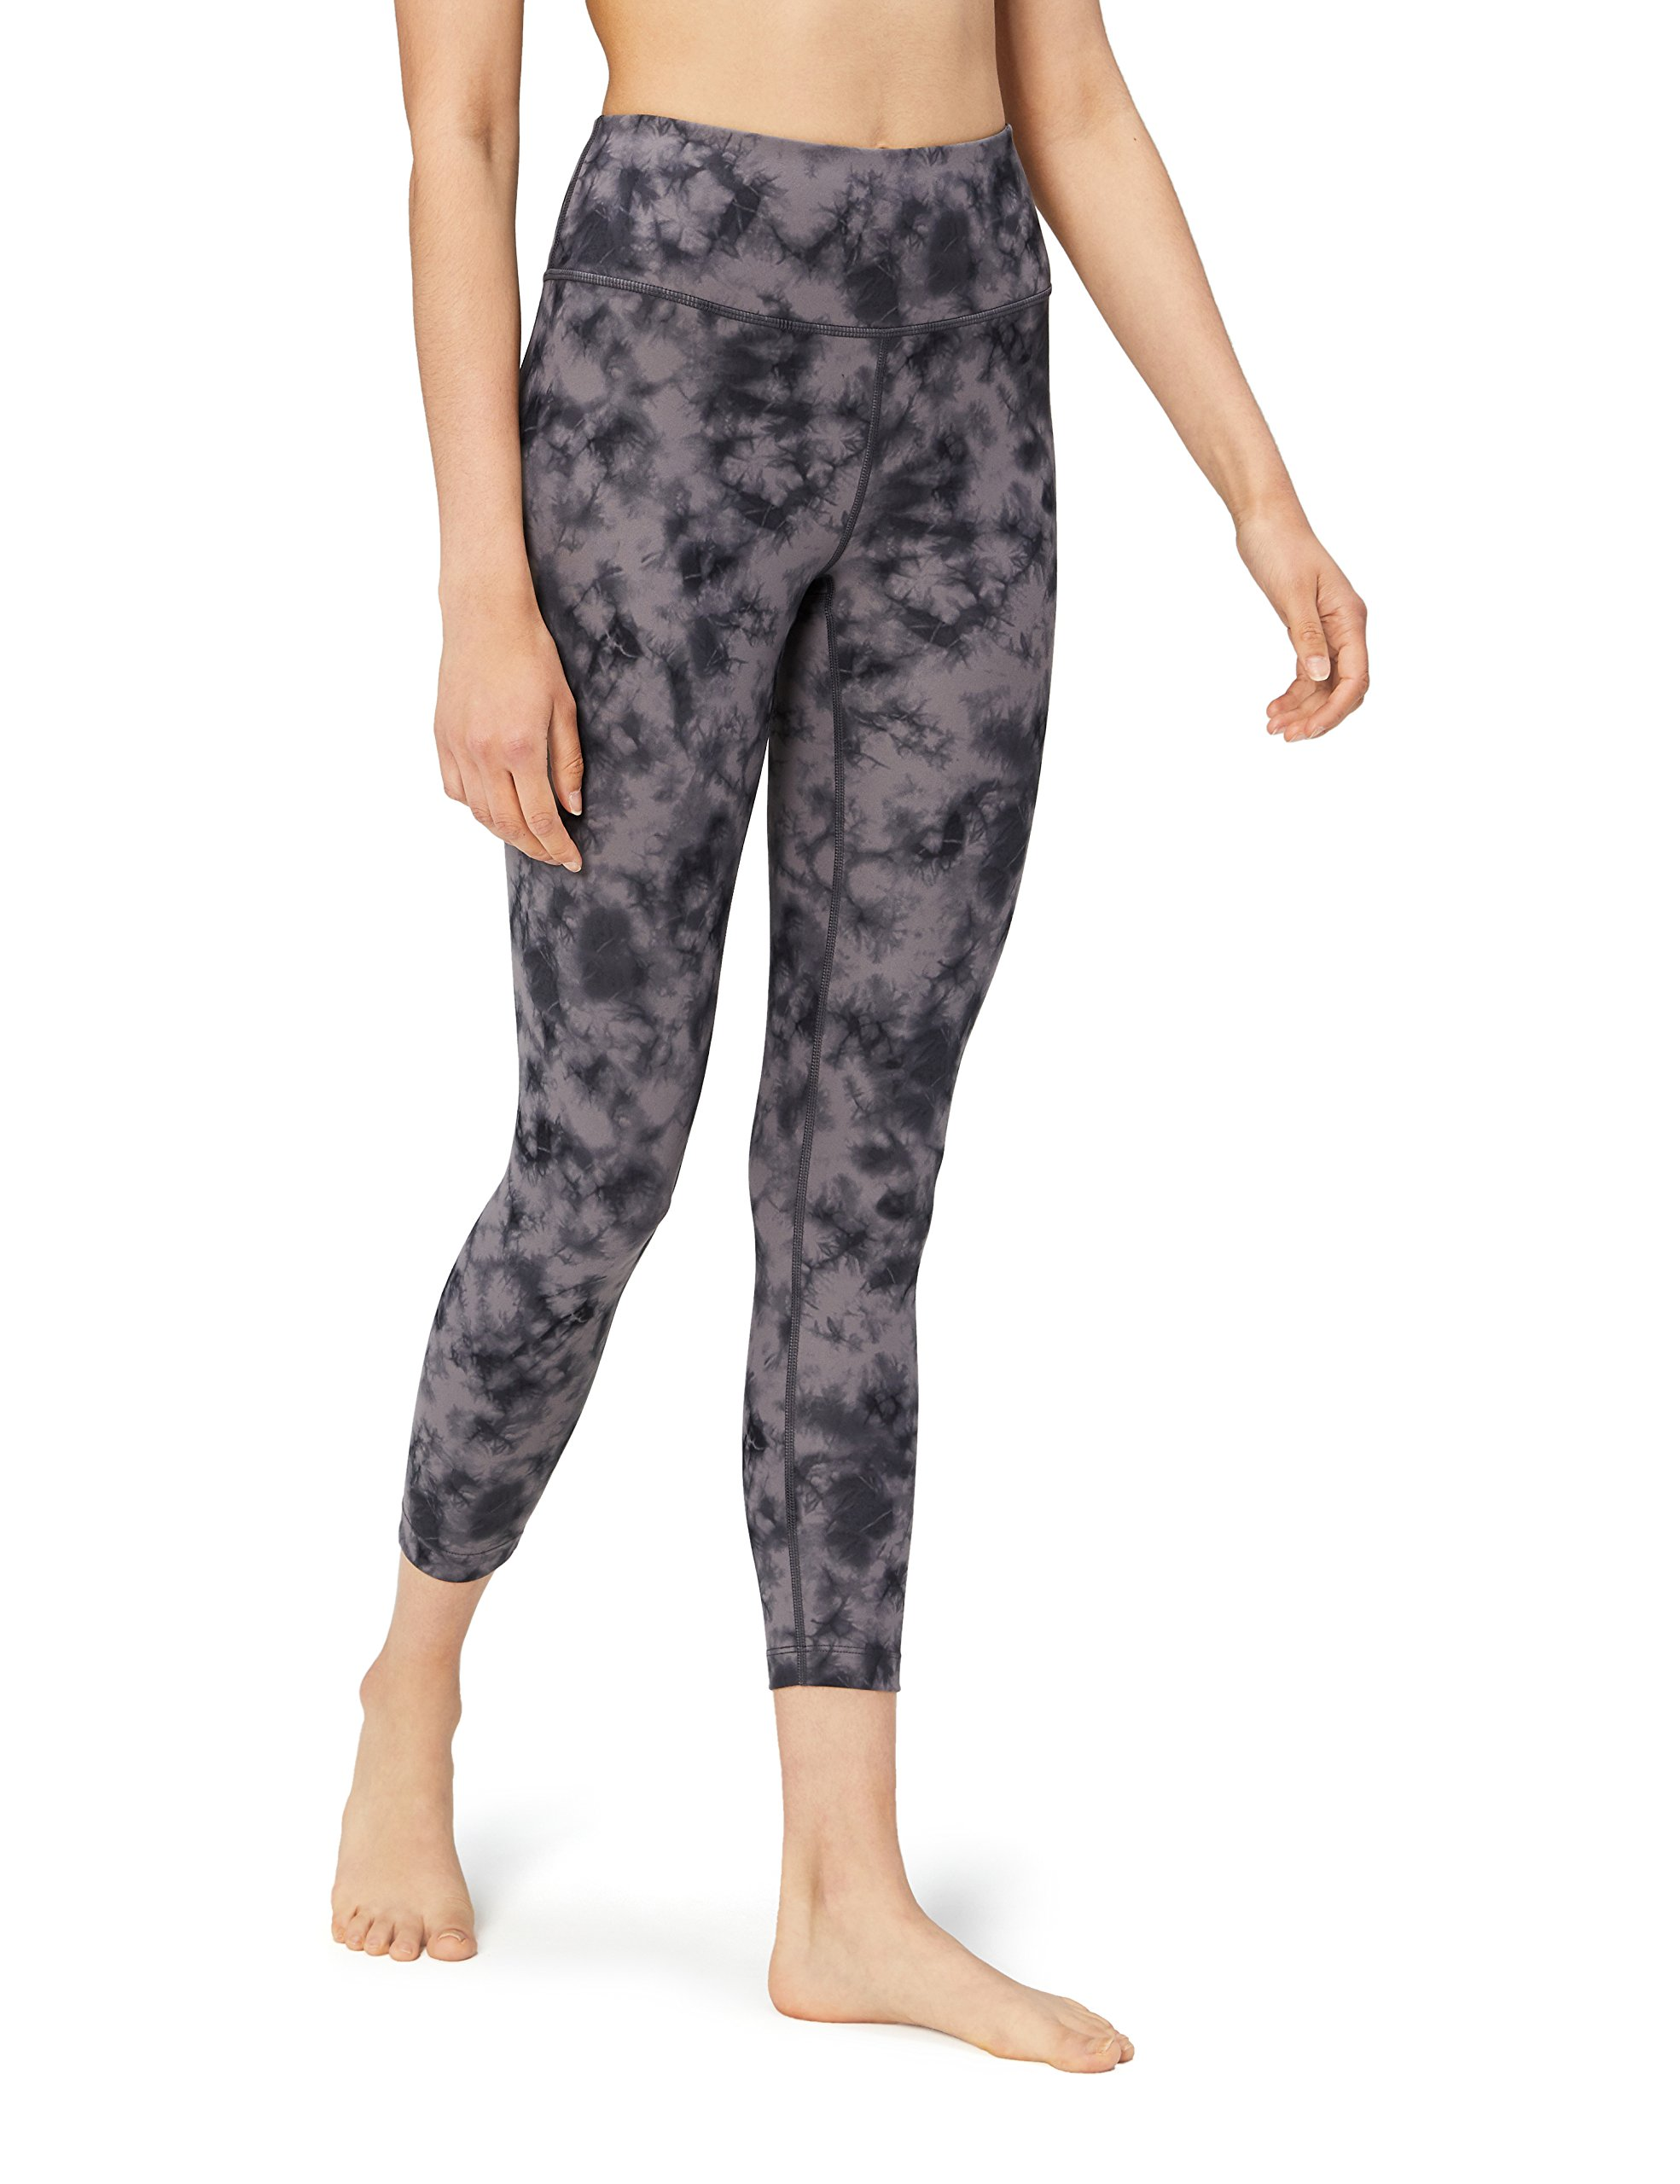 Core 10 Women's Spectrum High Waist Yoga 7/8 Crop Legging - 24'', Black/Grey tie dye, Large